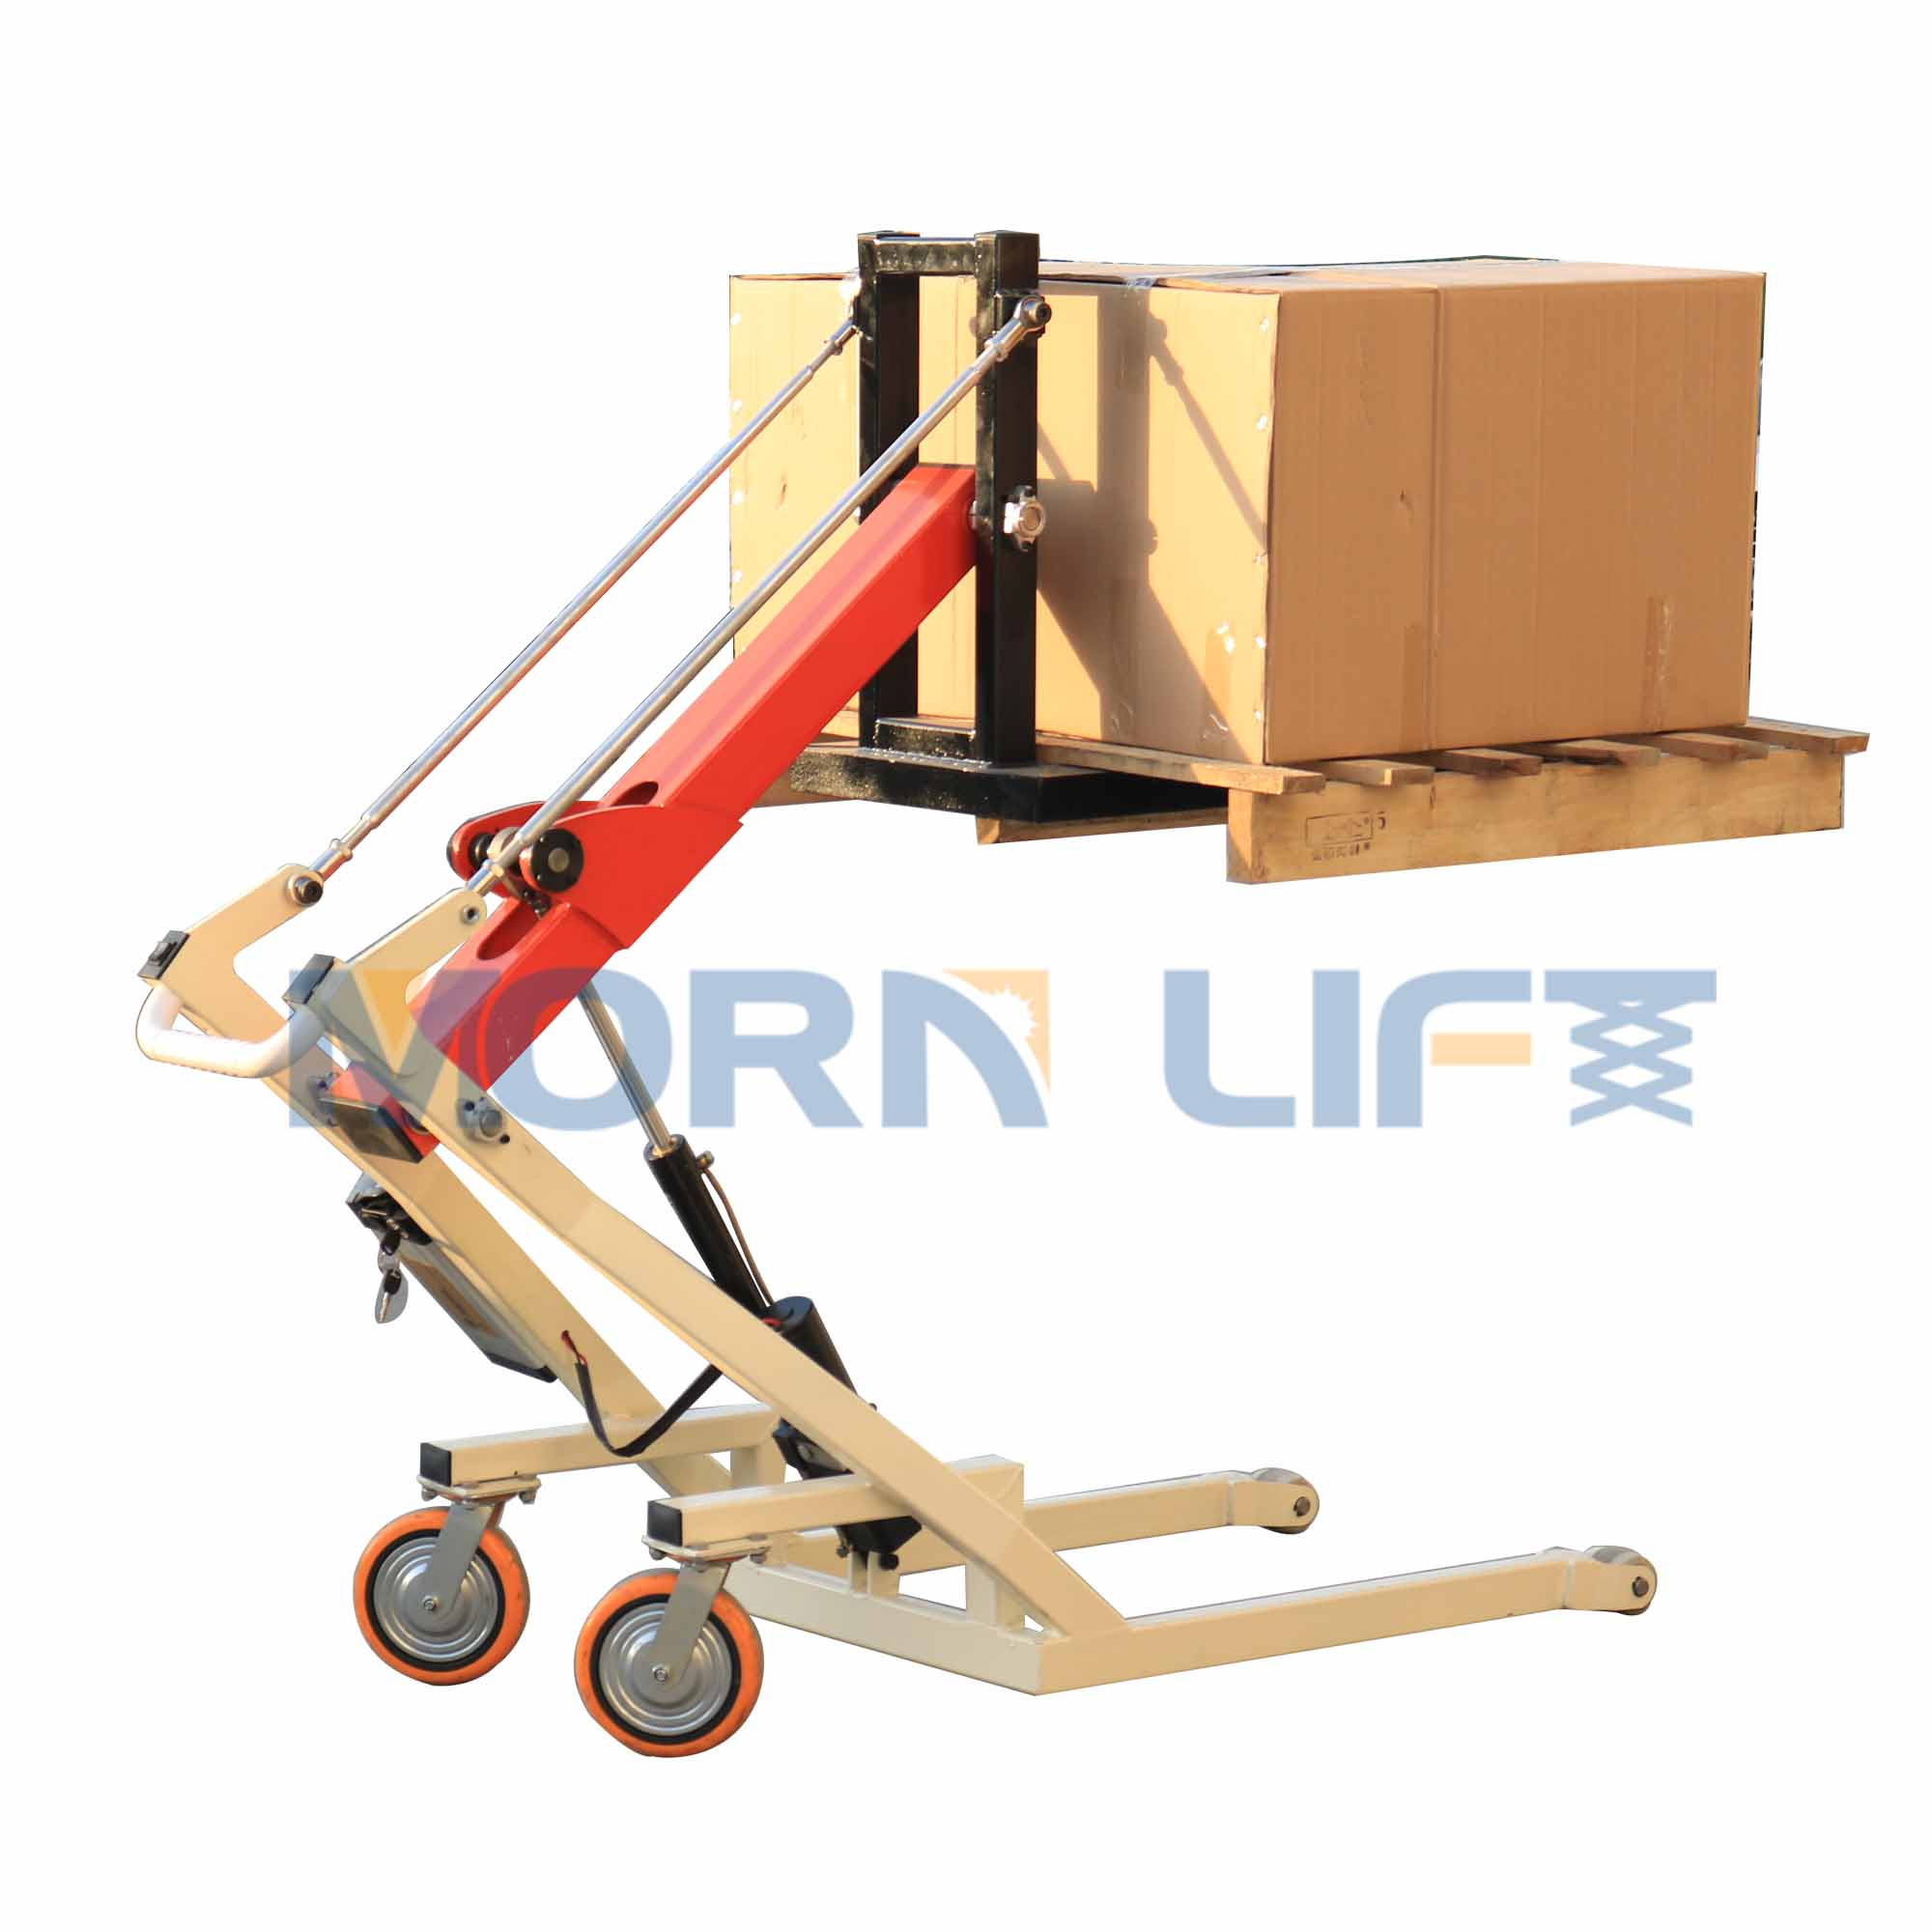 MORN LIFT Semi-electric Pallet Truck